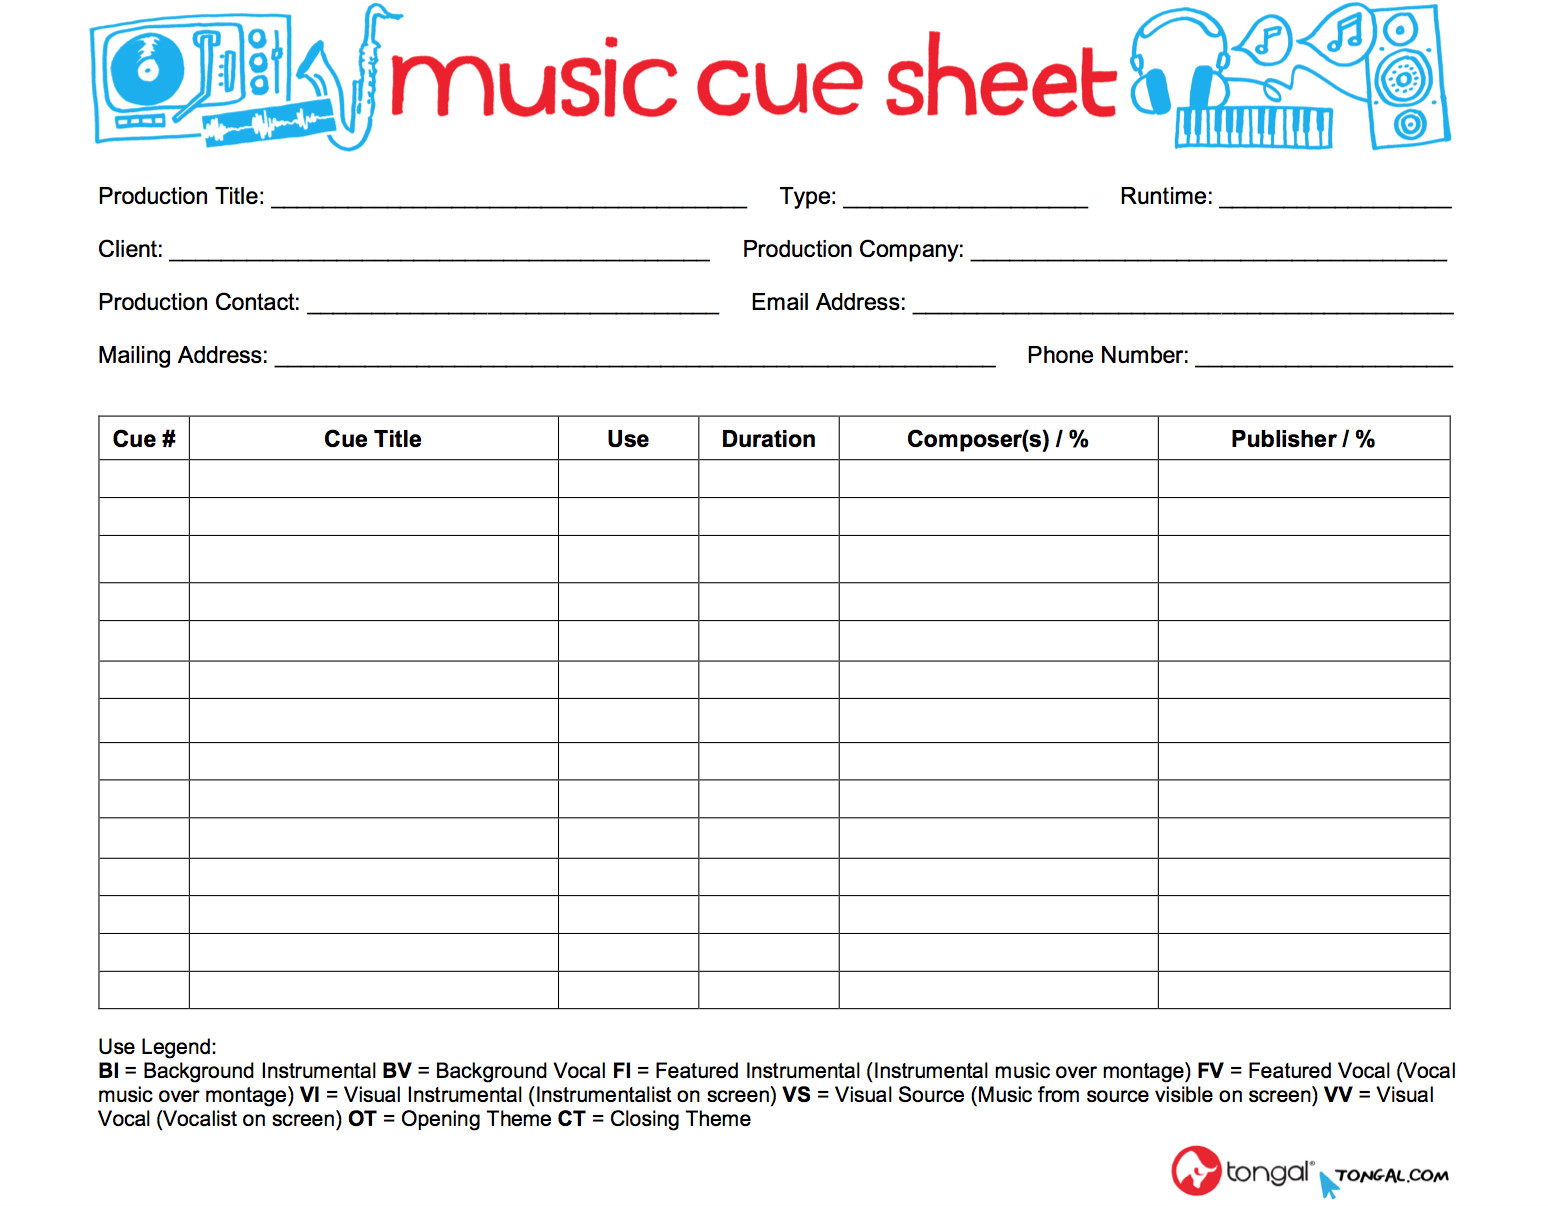 Sound Cue Sheet Template Introducing the tongal Music Cue Sheet tongal